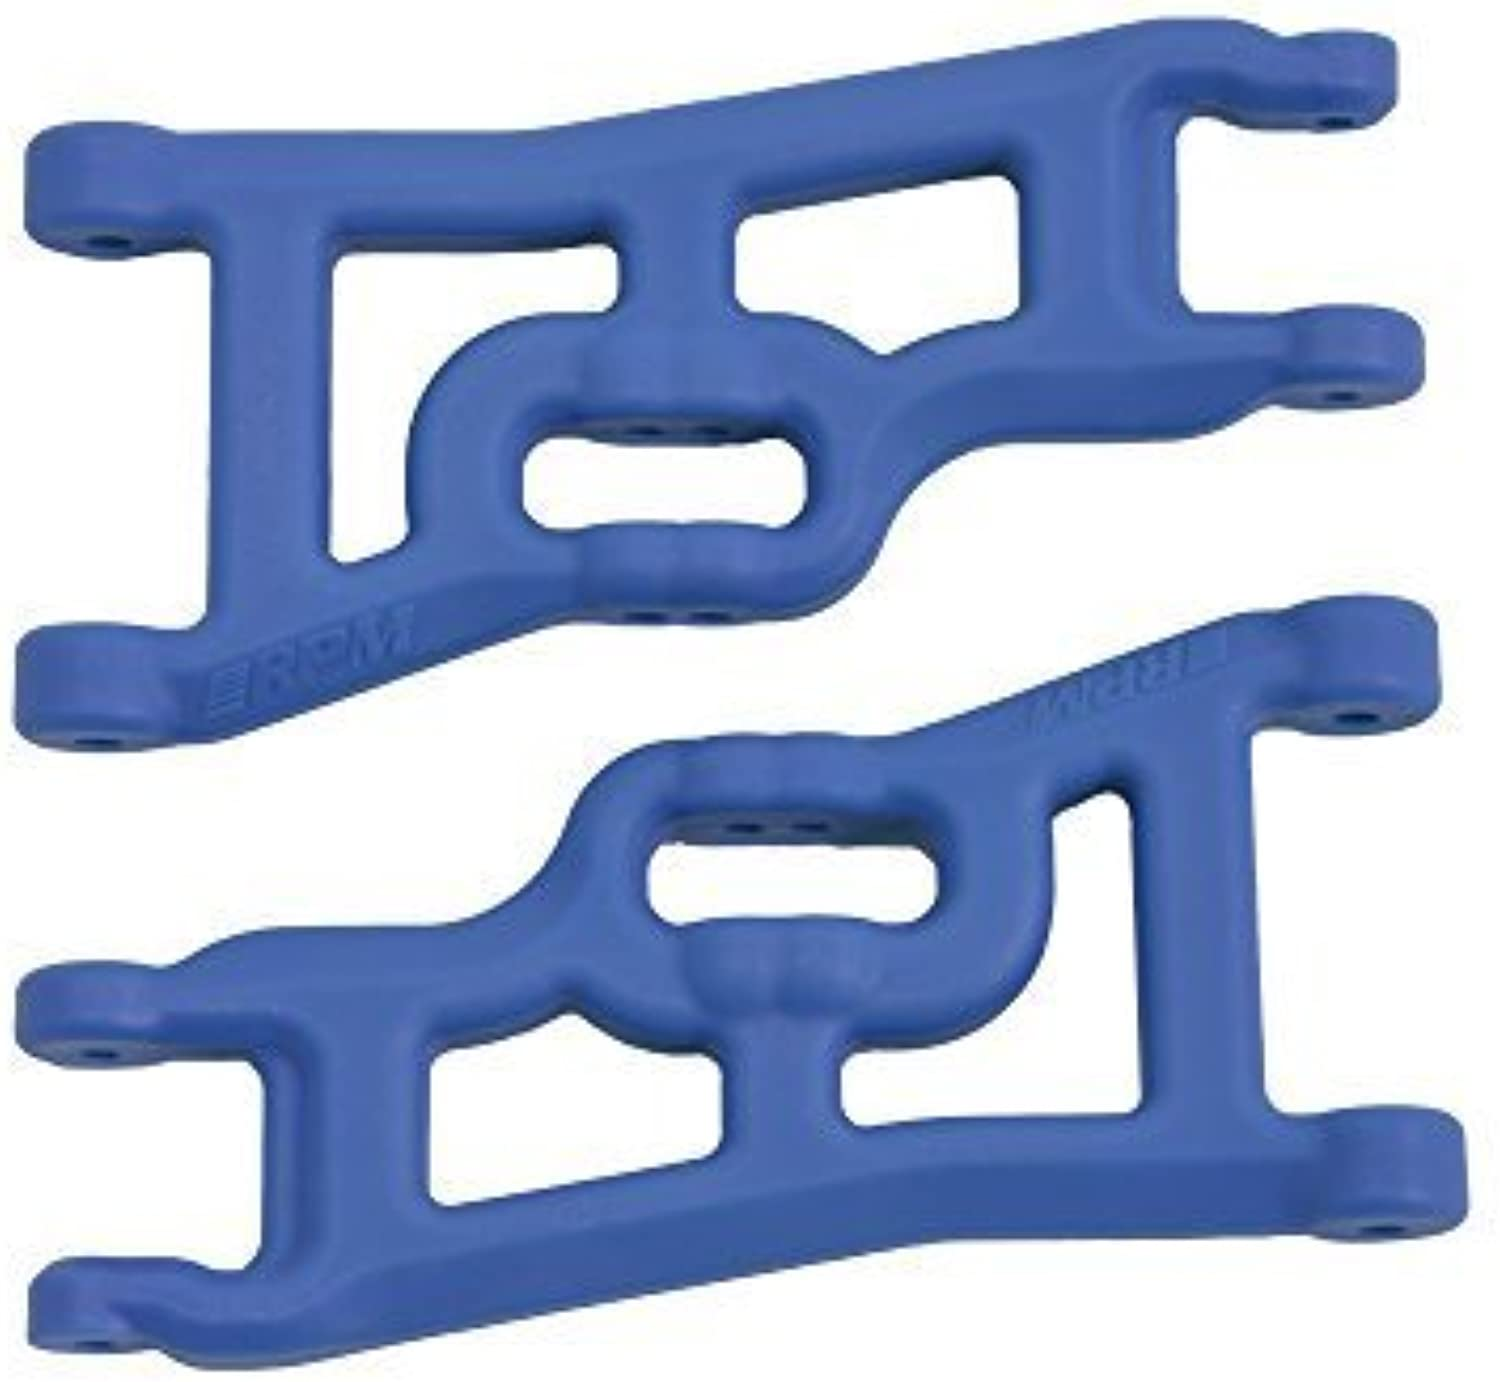 Front Aarms (2) OffsetCompensating, bluee; Slash by RPM